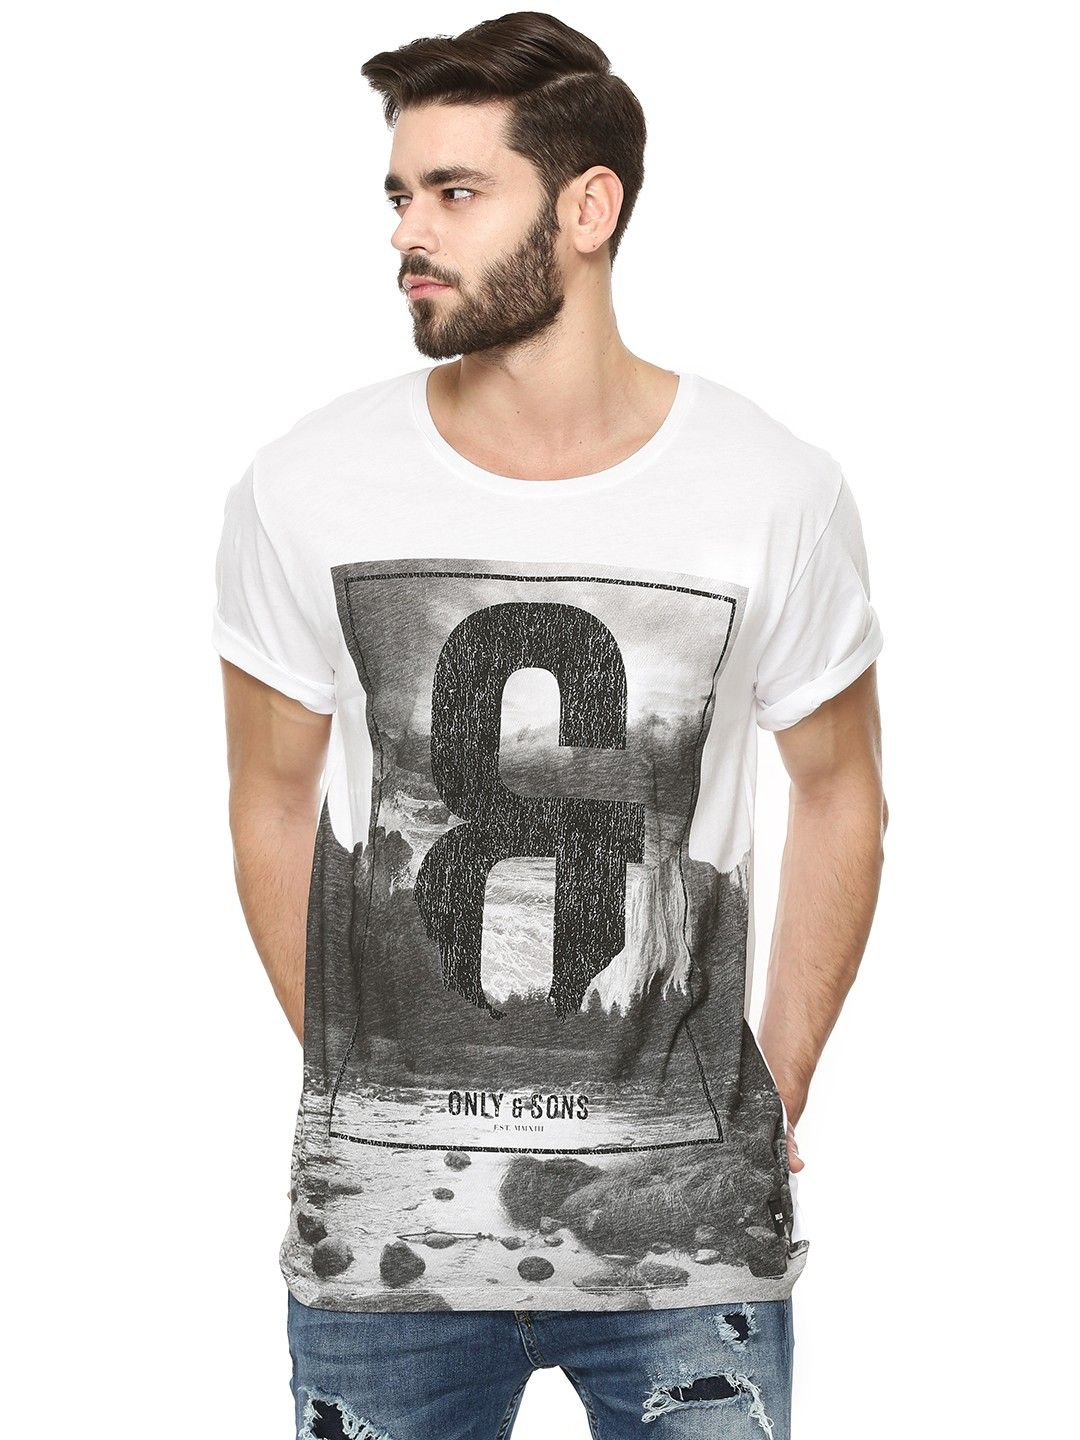 Only Sons Graphic Print T Shirt For Men S Multi